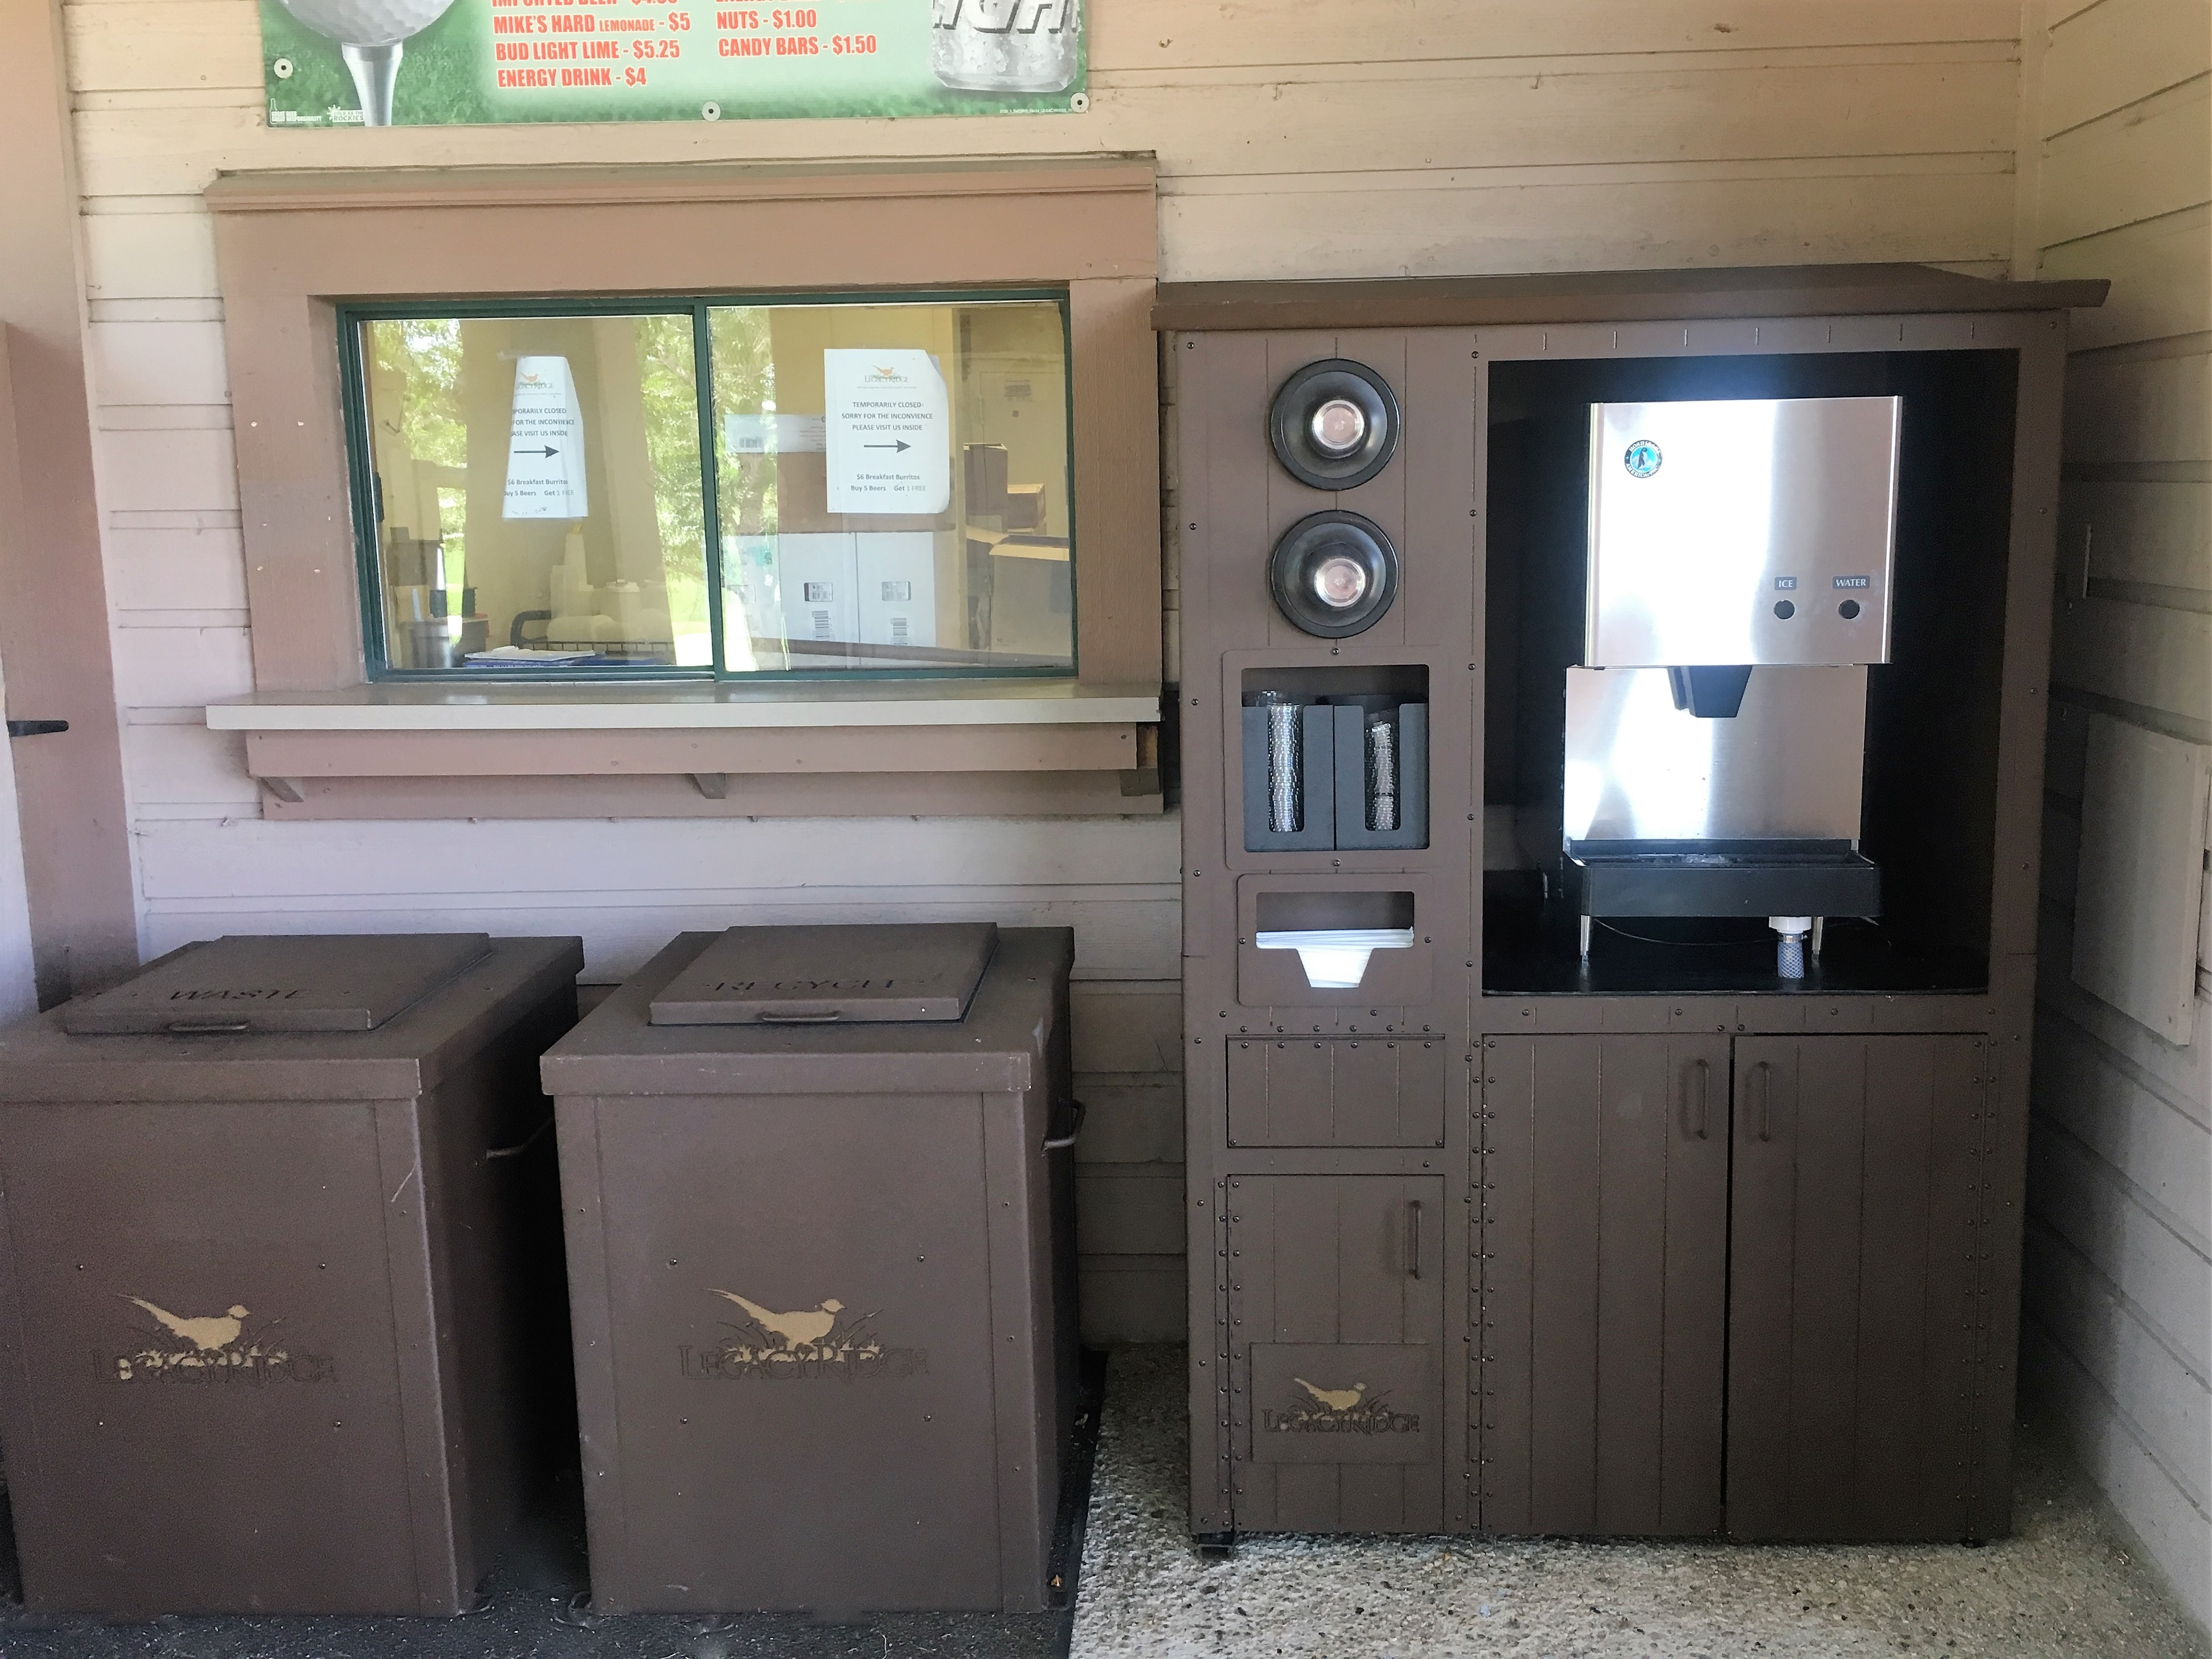 1_Legacy-Ridge-WATER-STATION-TRASH-CANS